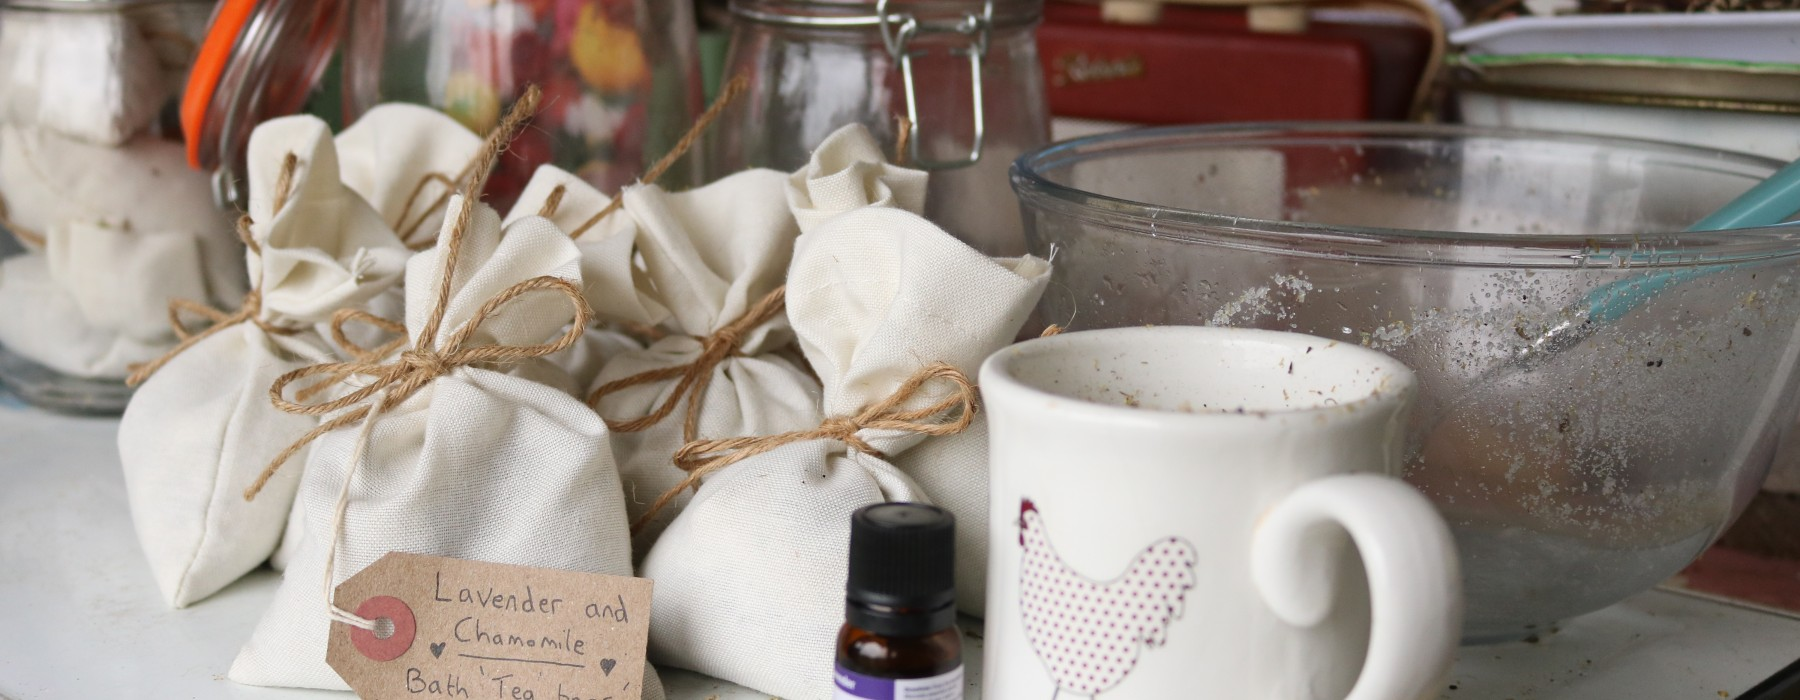 Herbal Bath 'Tea Bags'